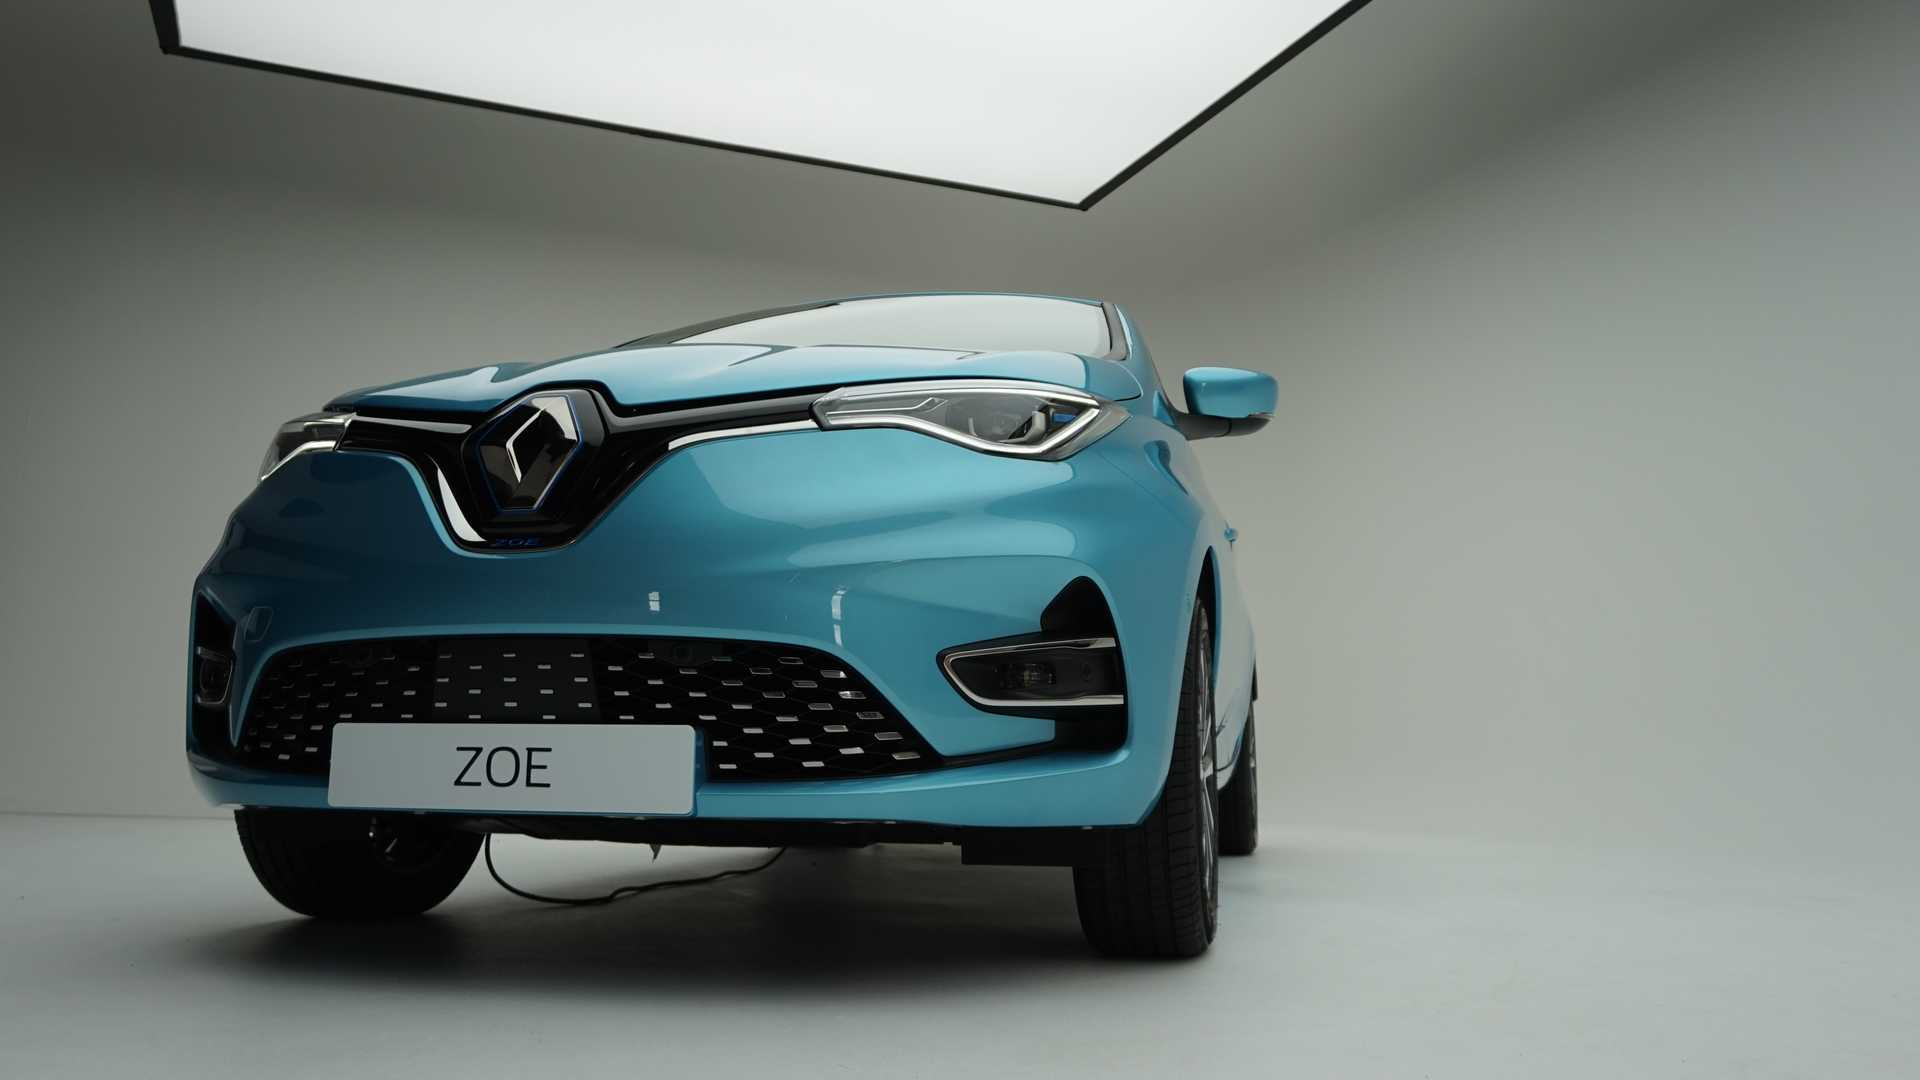 Meet The New 2019 Renault ZOE With 52 kWh Battery And 100 kW